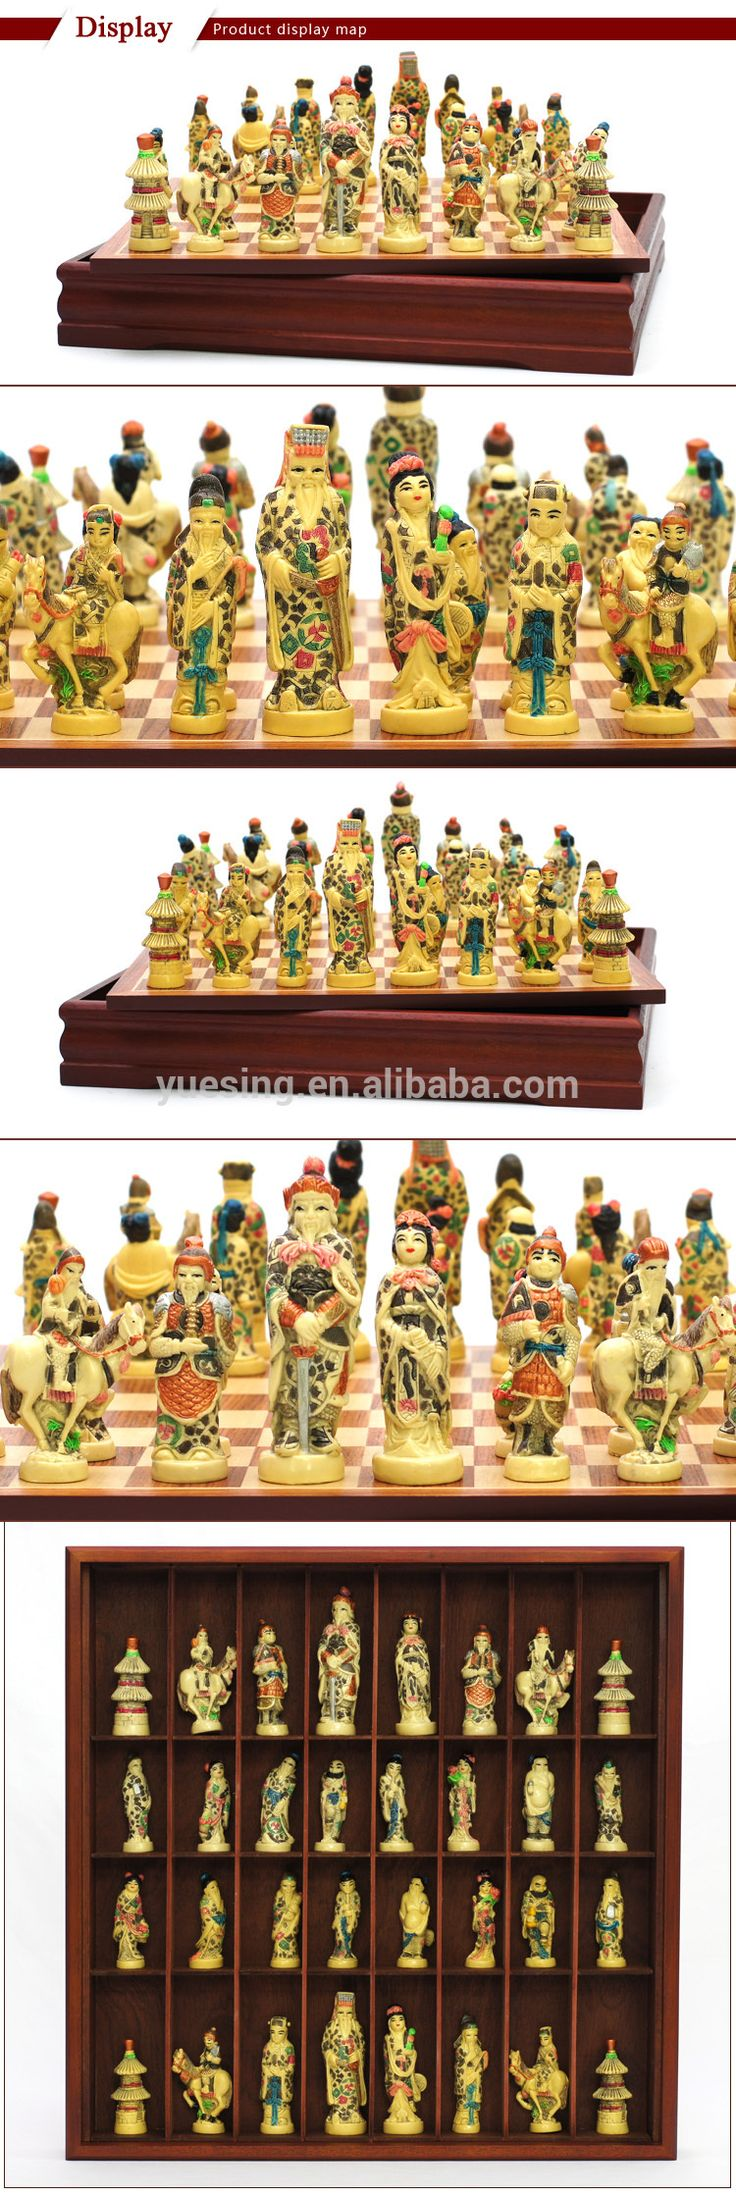 Portrait Of Chinese Myth Theme 3d Chess Set with Antique Handmade Wooden Case